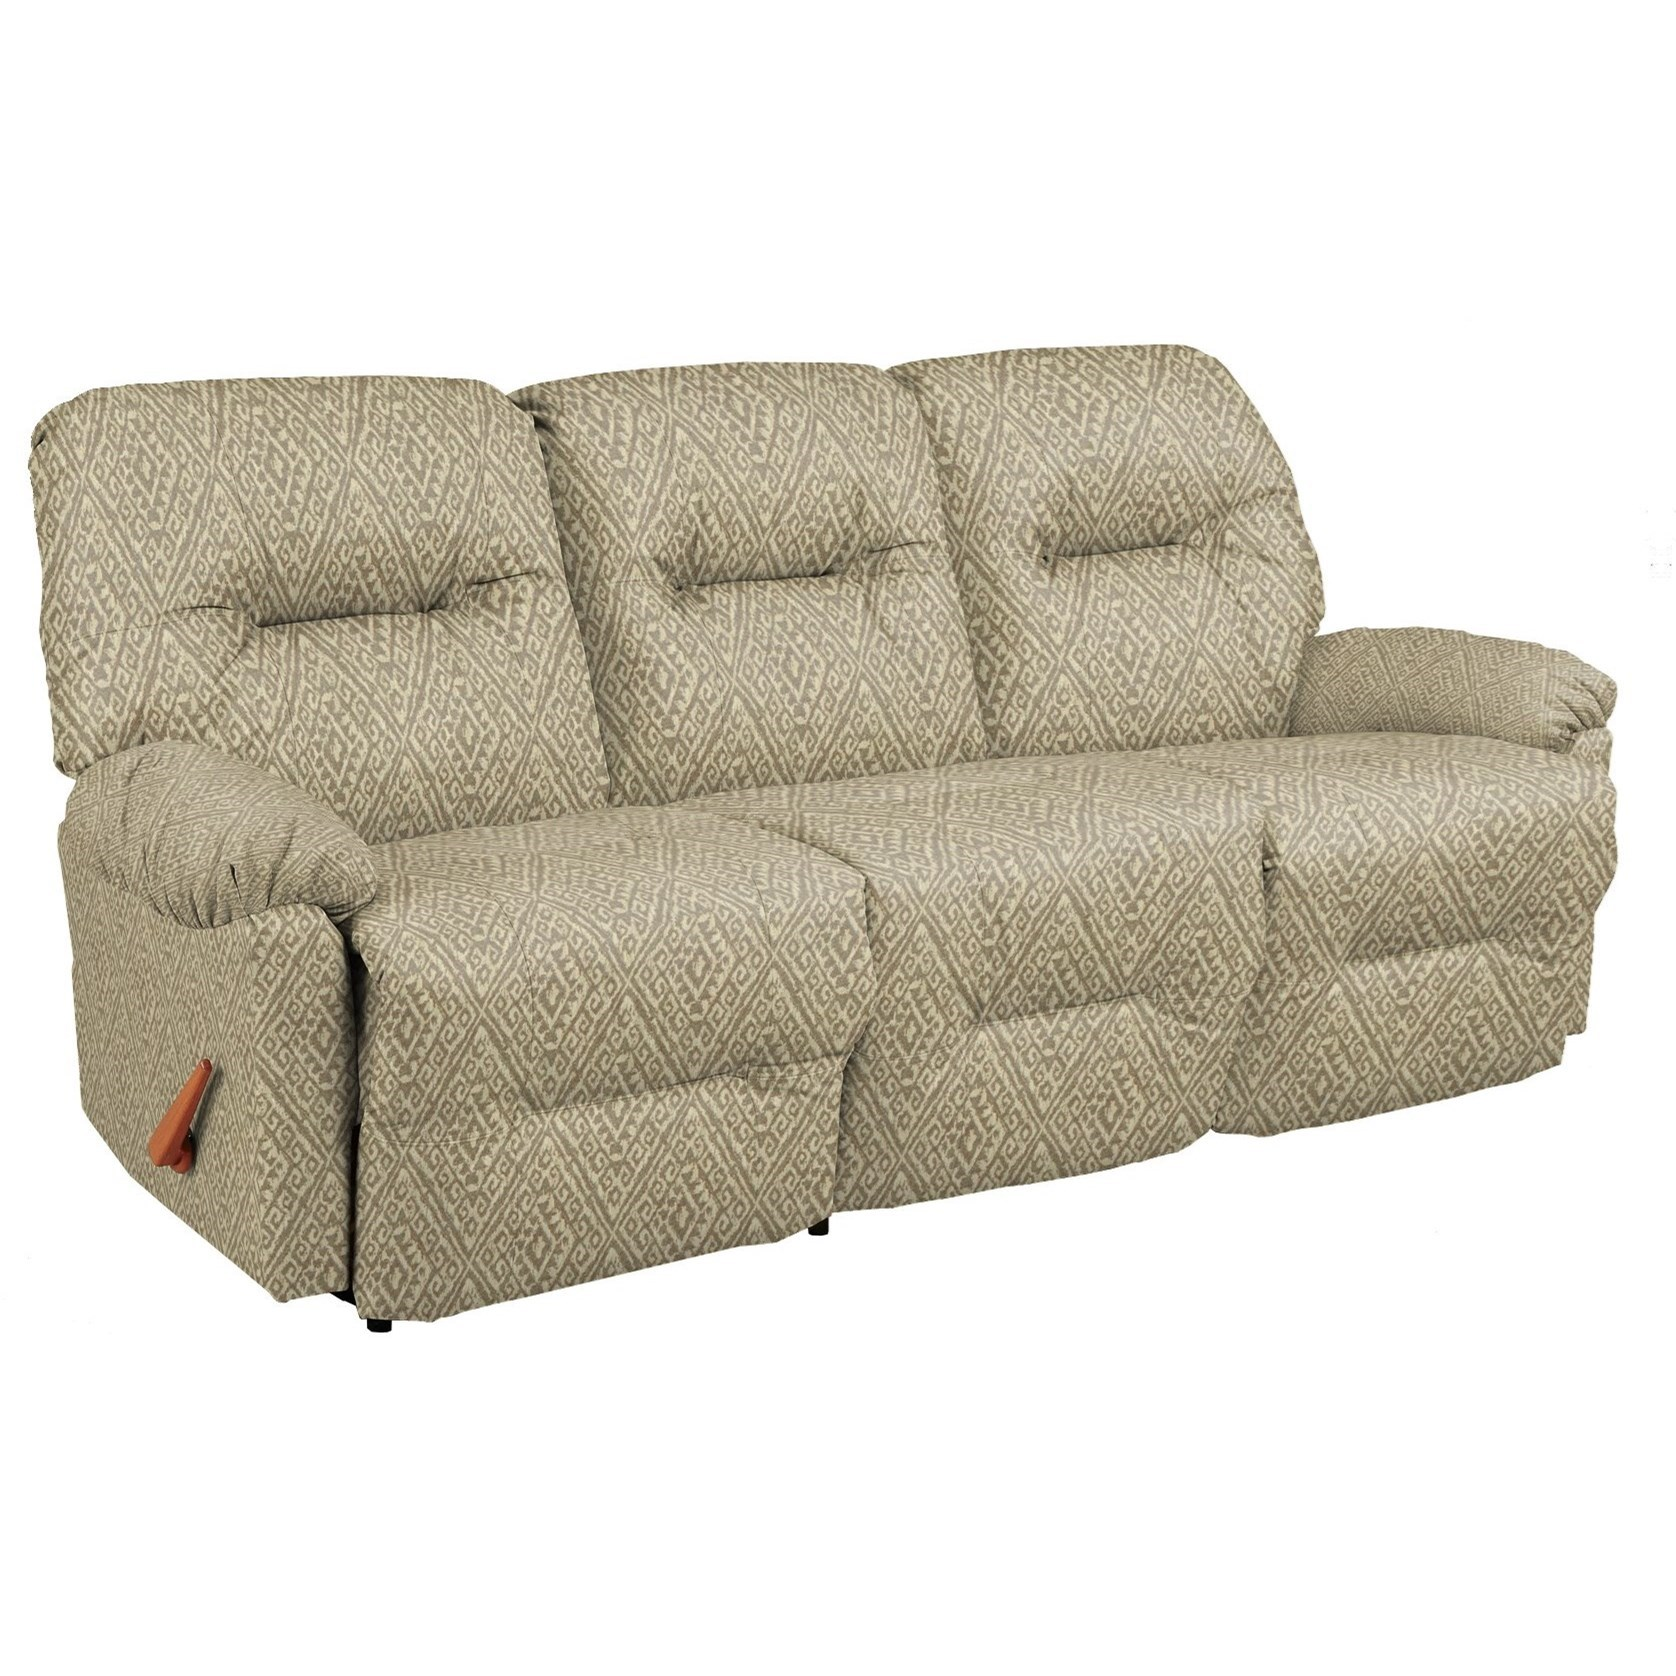 Best Home Furnishings Redford Reclining Sofa - Item Number: -679135843-31689